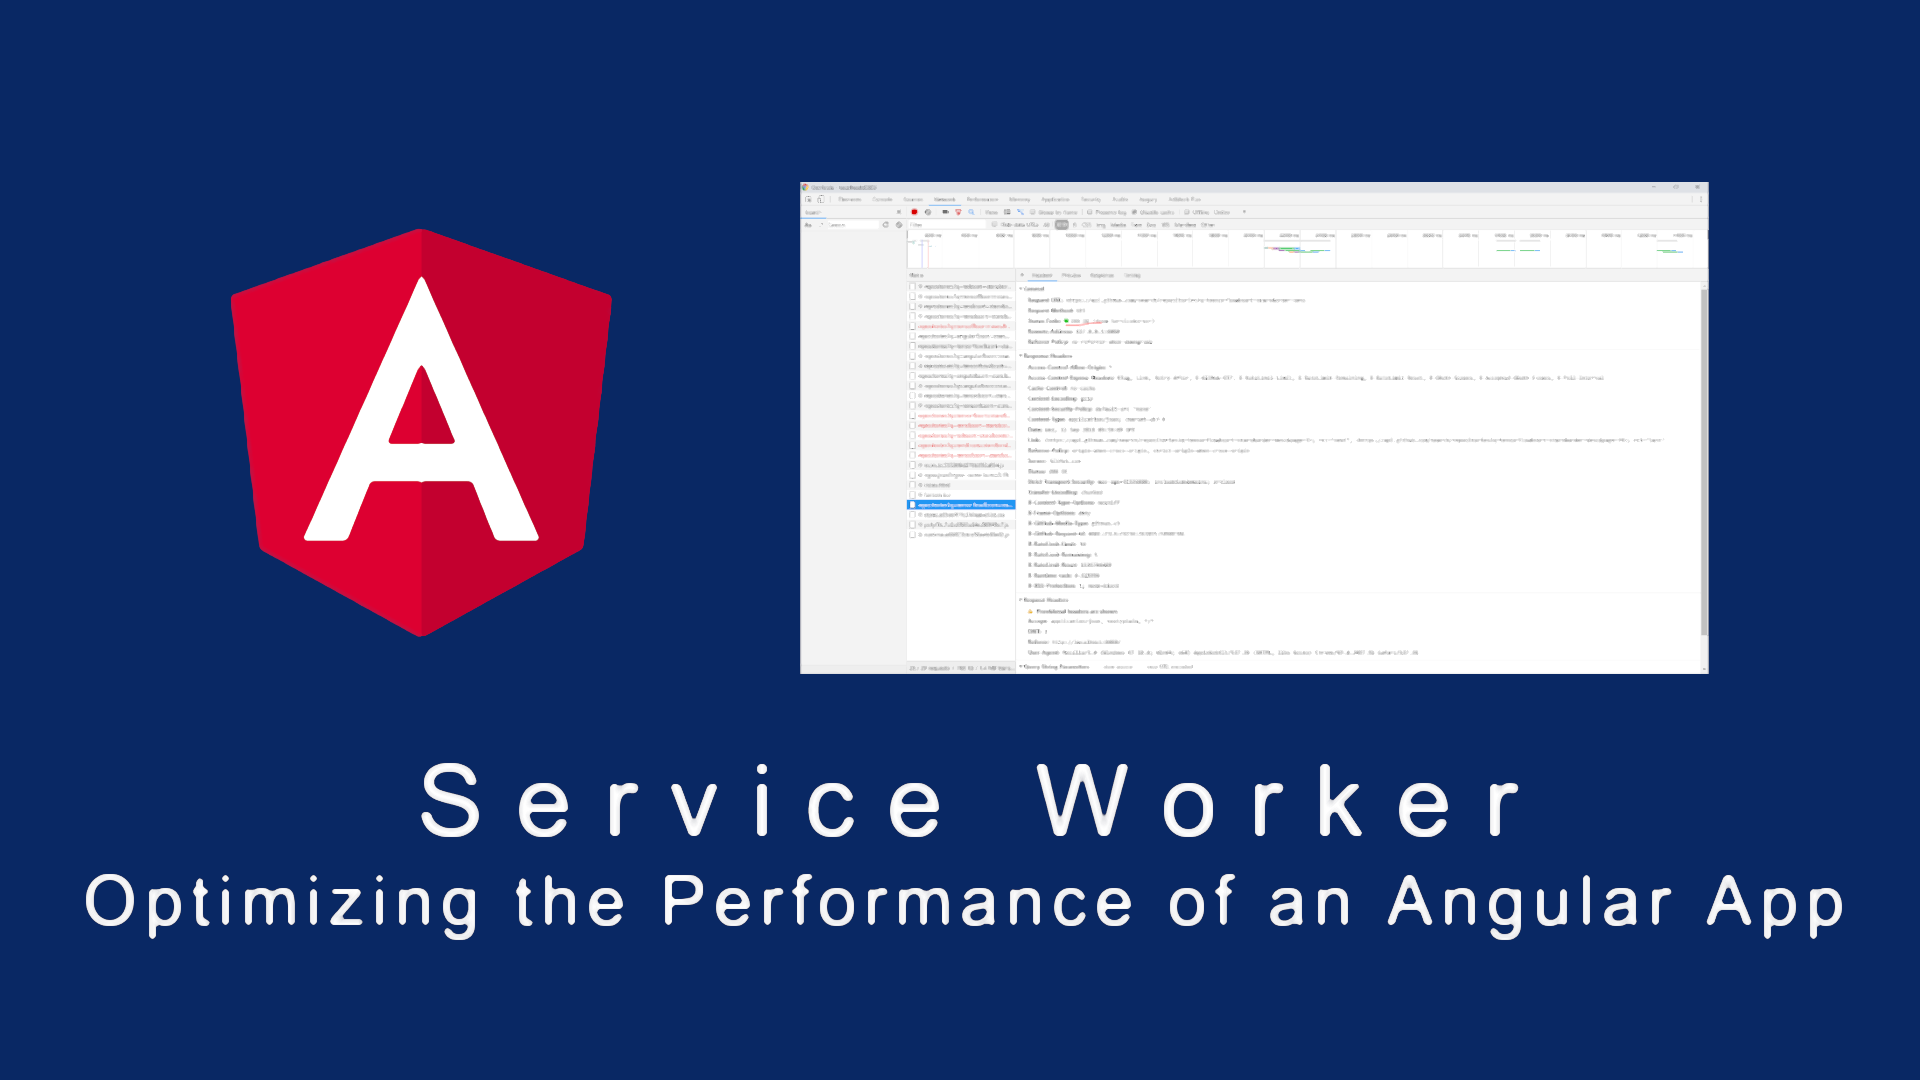 Service Worker – Optimizing the Performance of an Angular App